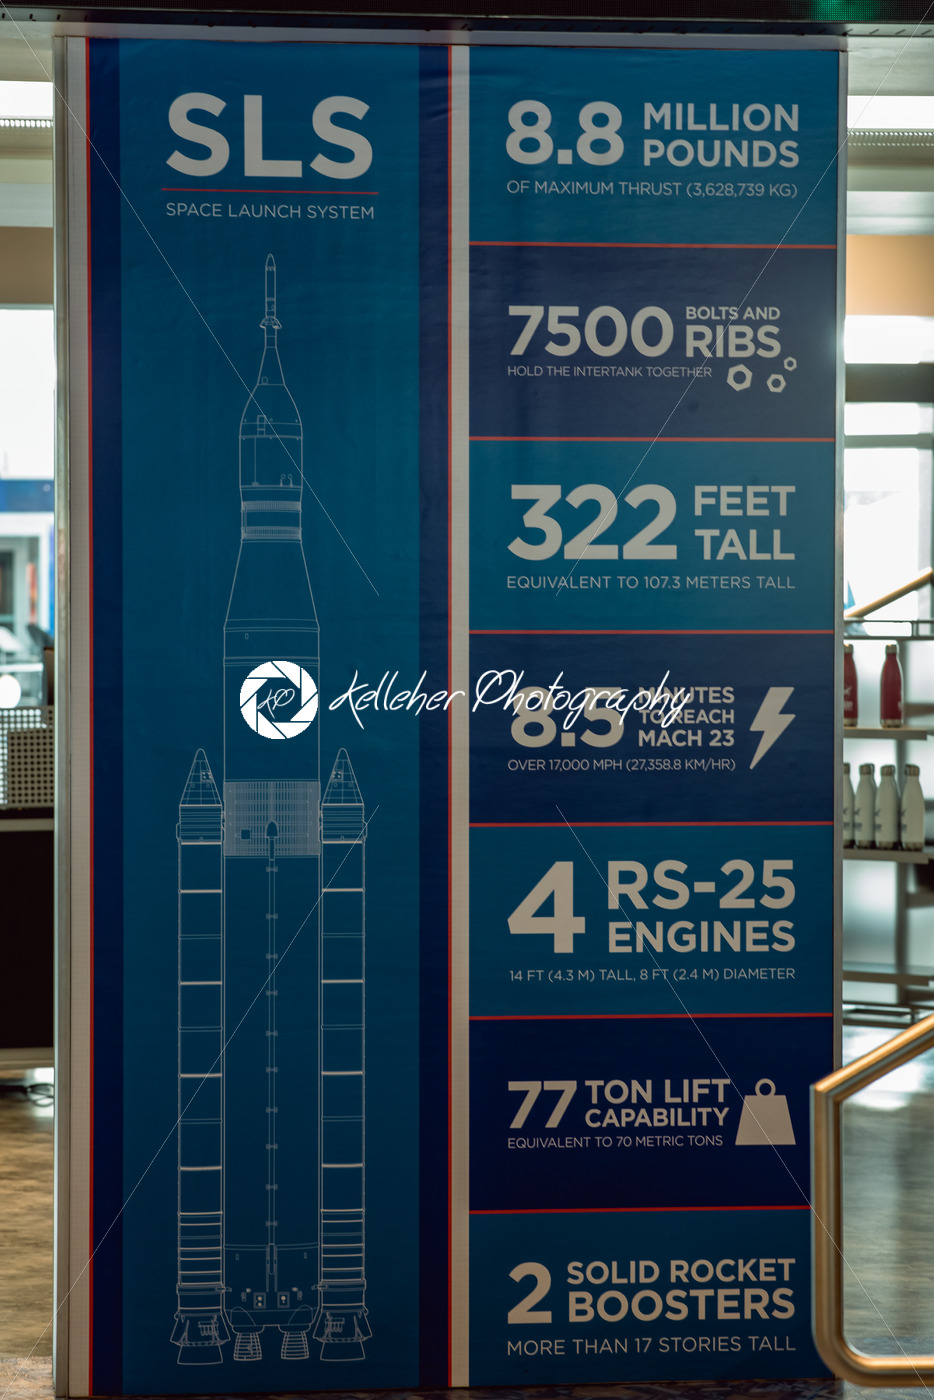 Cape Canaveral, Florida – August 13, 2018: SLS information board at NASA Kennedy Space Center - Kelleher Photography Store